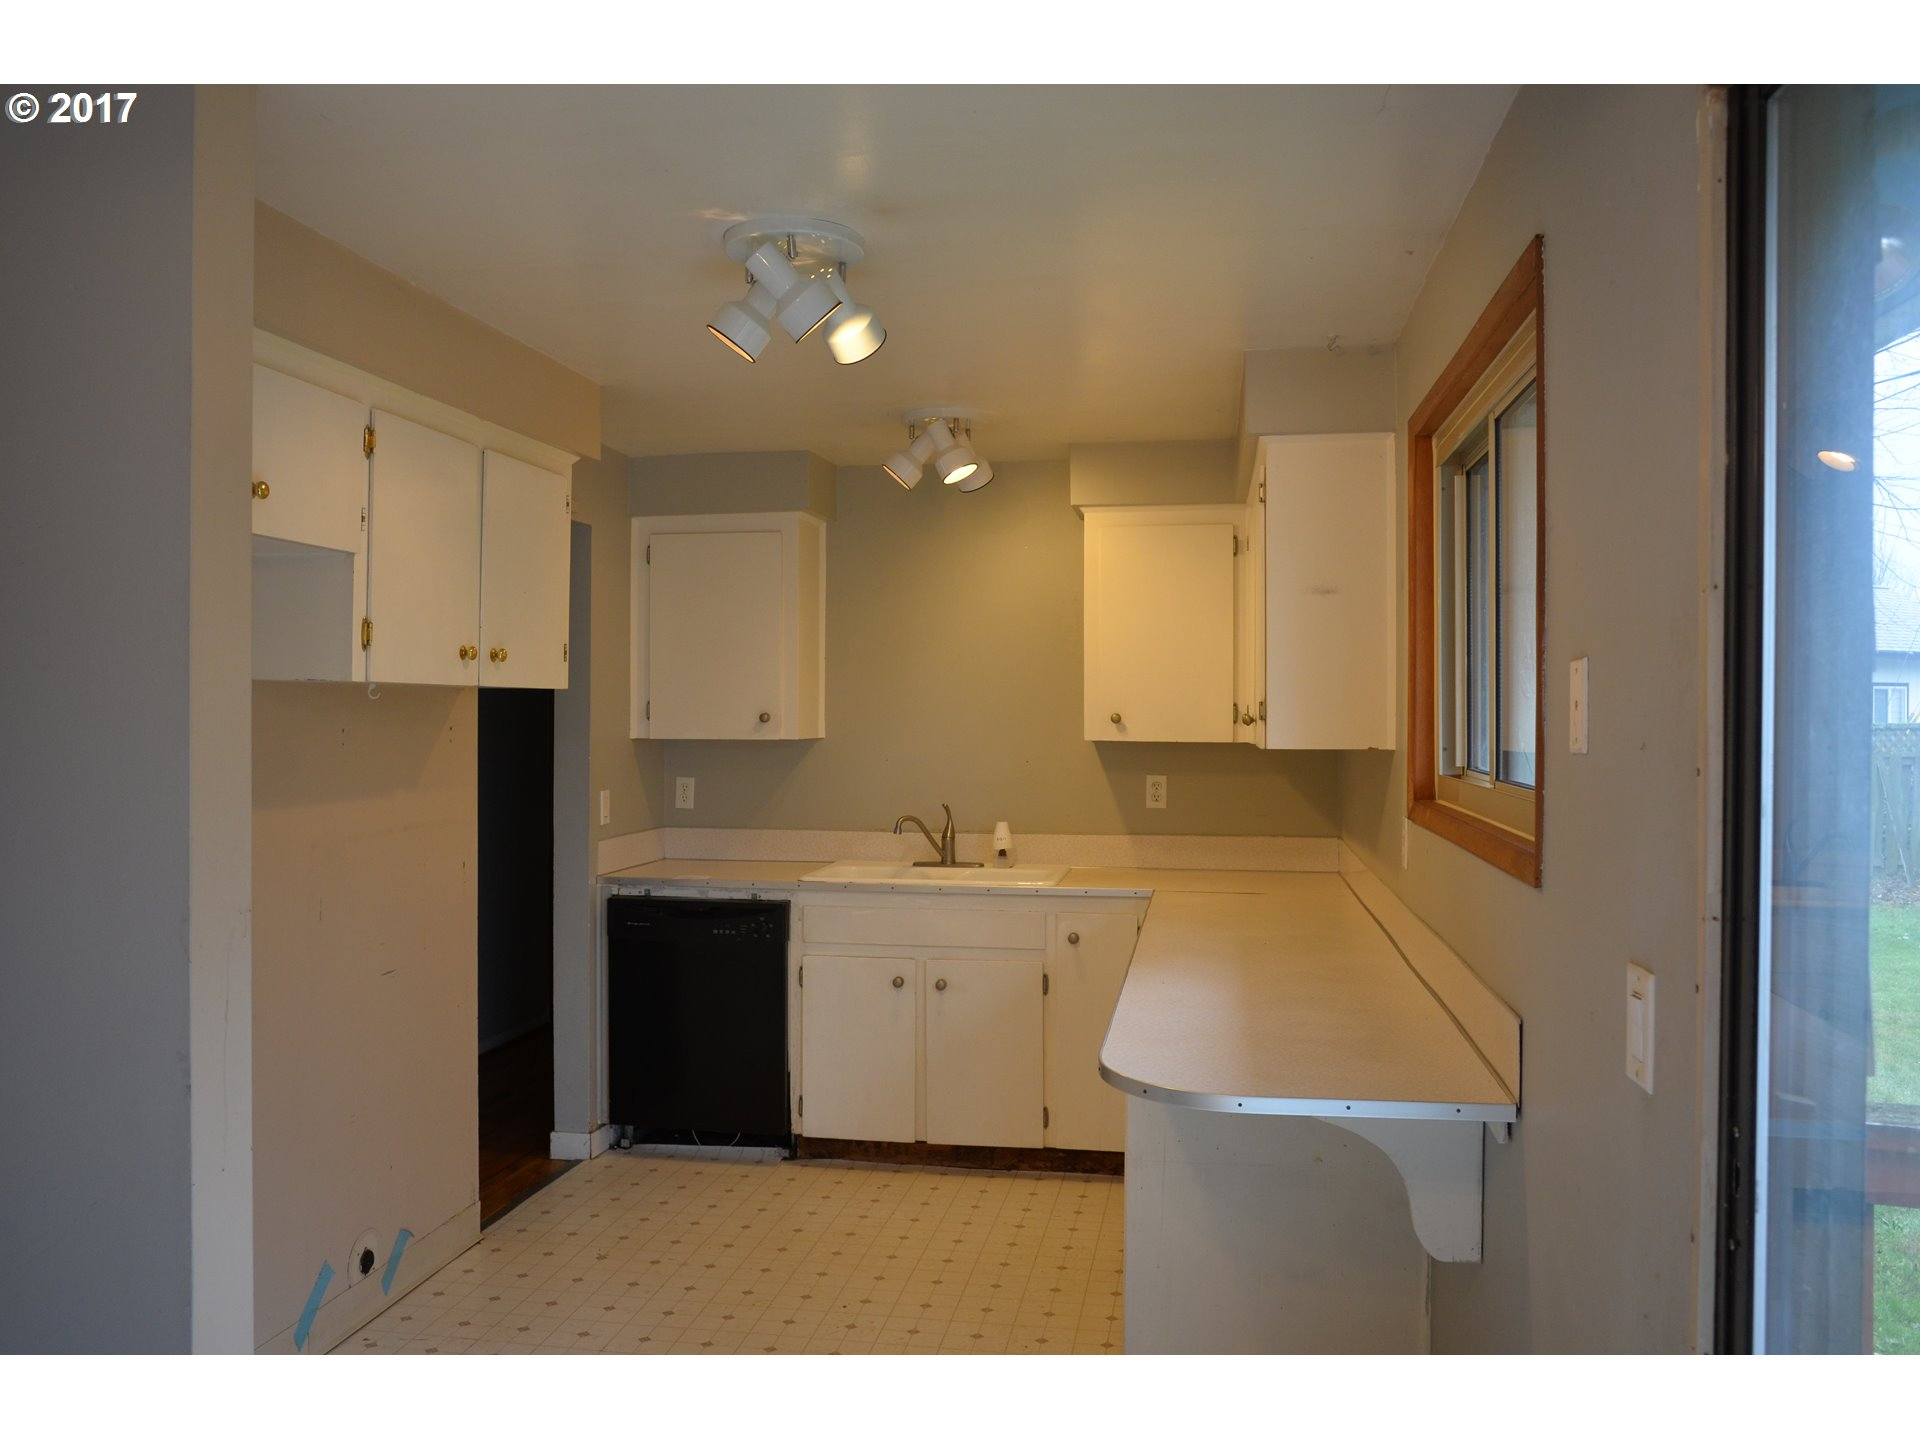 1000 sq. ft 3 bedrooms 1 bathrooms  House , Portland, OR